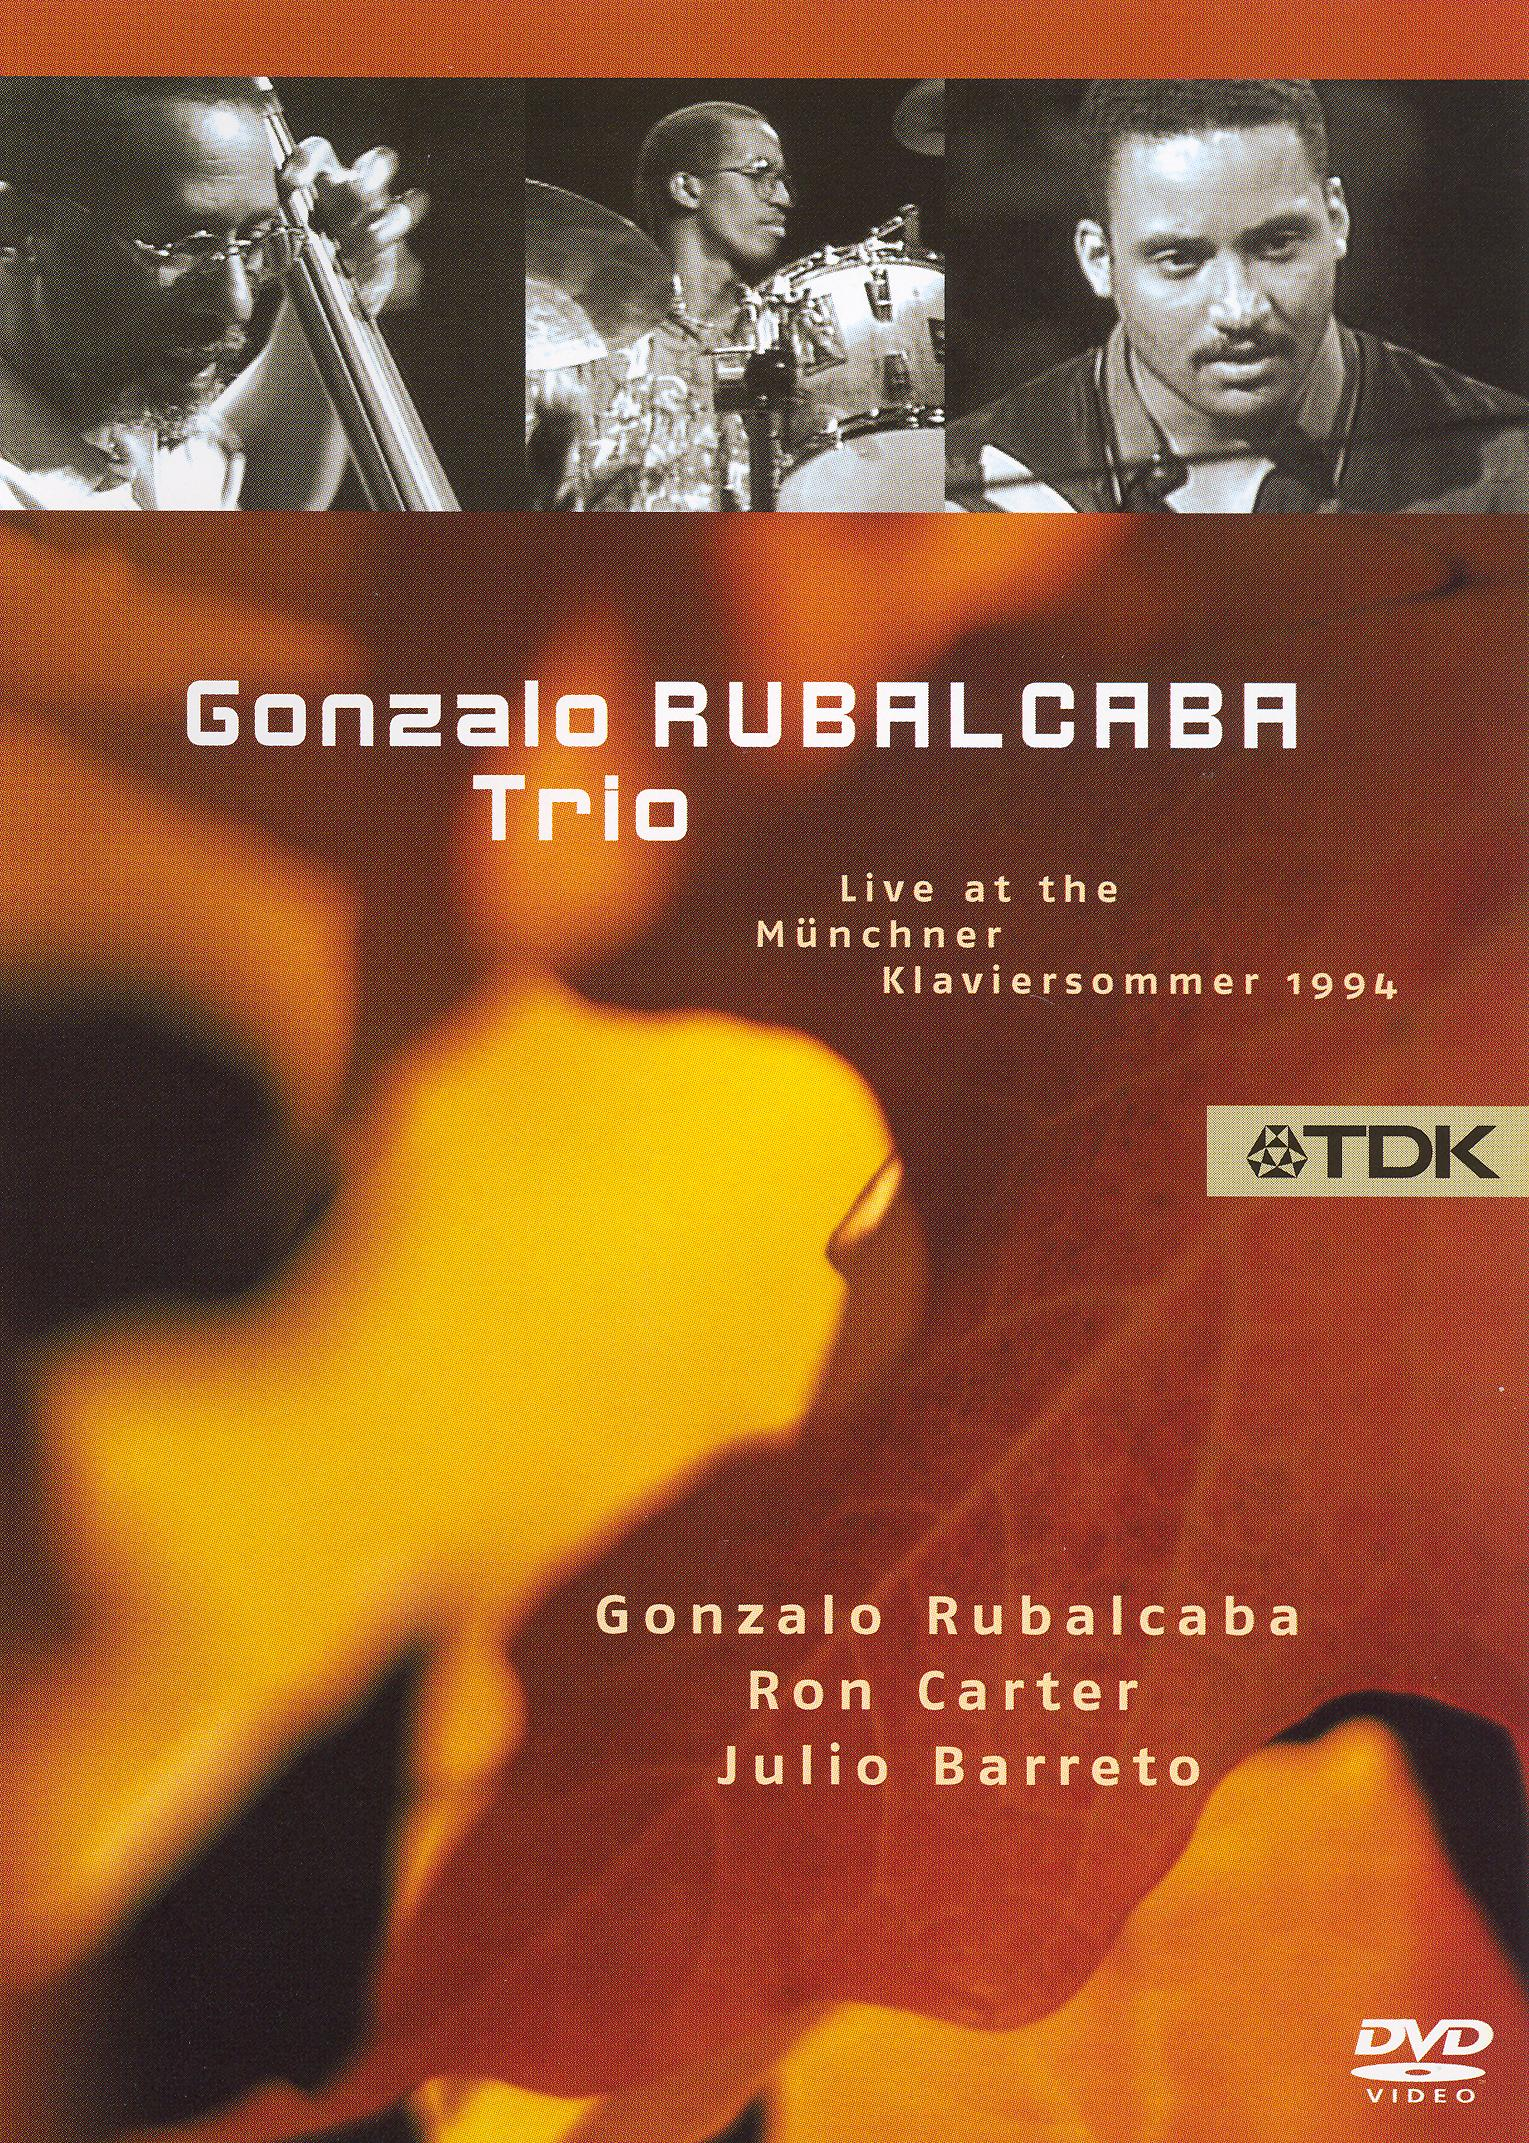 The Gonzalo Rubalcaba Trio: Live at the Munchner Klaviersommer 1994